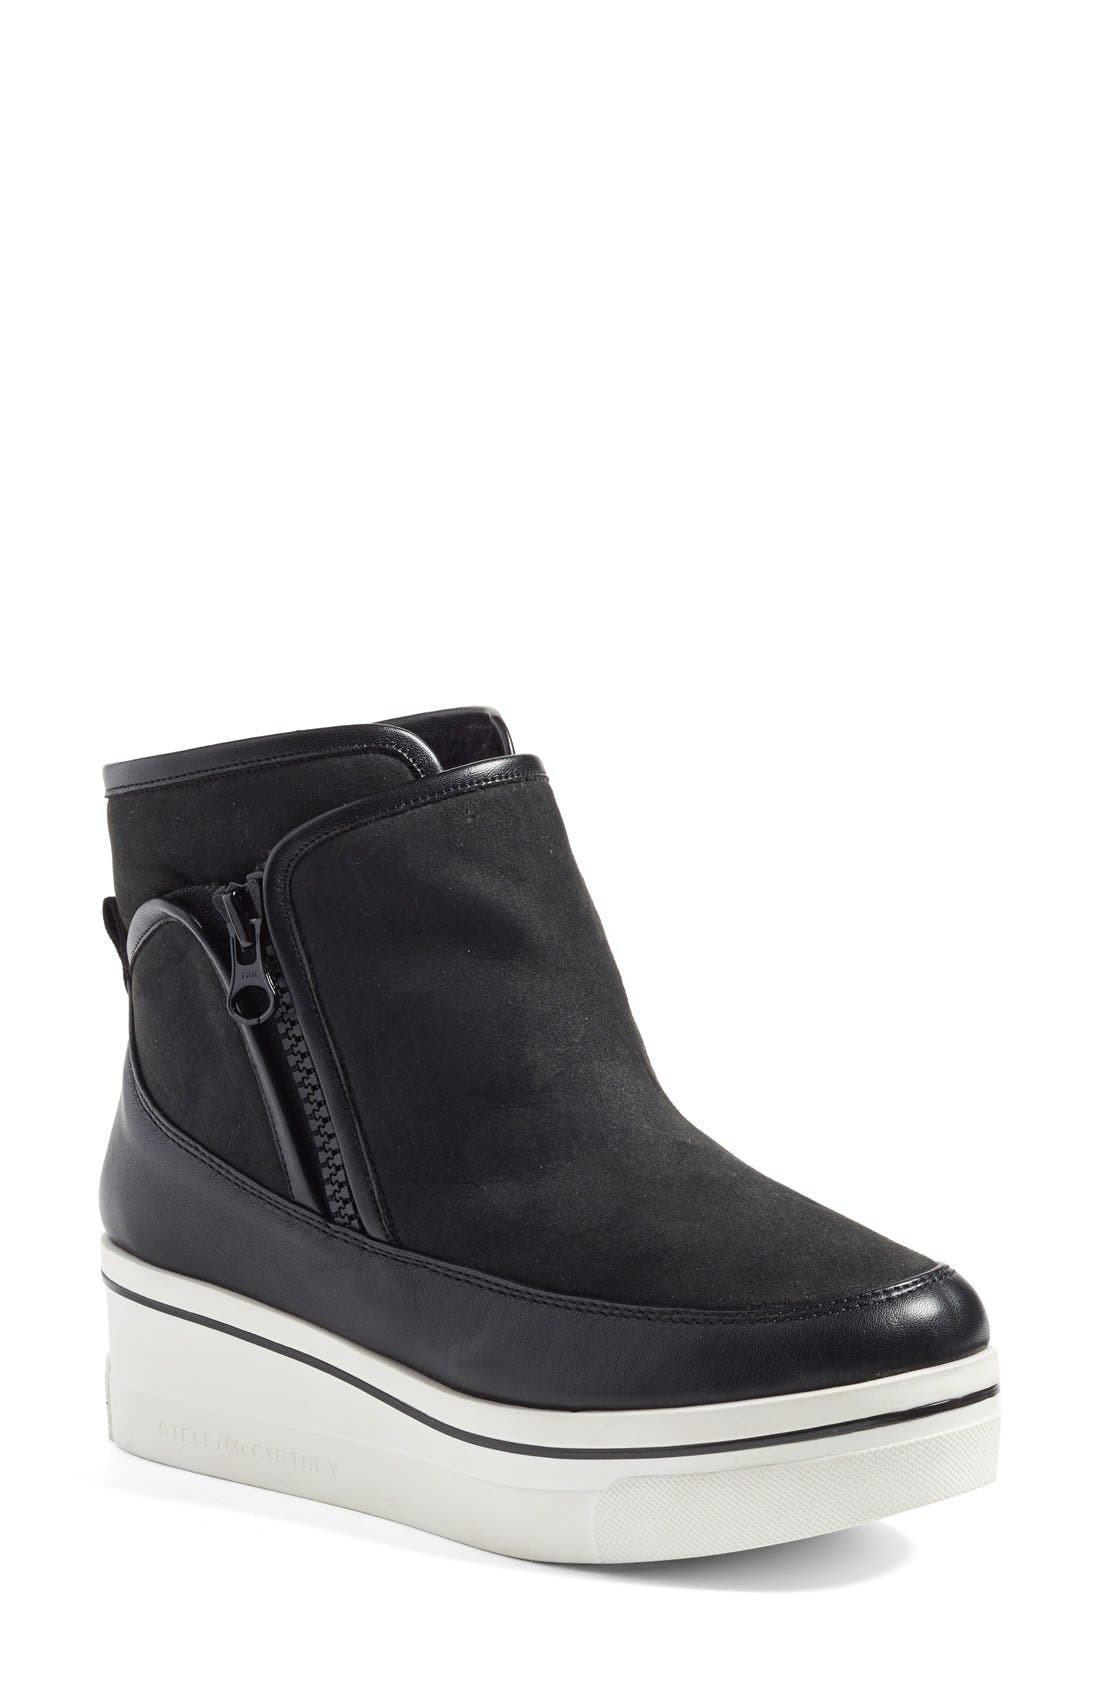 Stella McCartney 'Binx' High Top Platform Sneaker (Women)